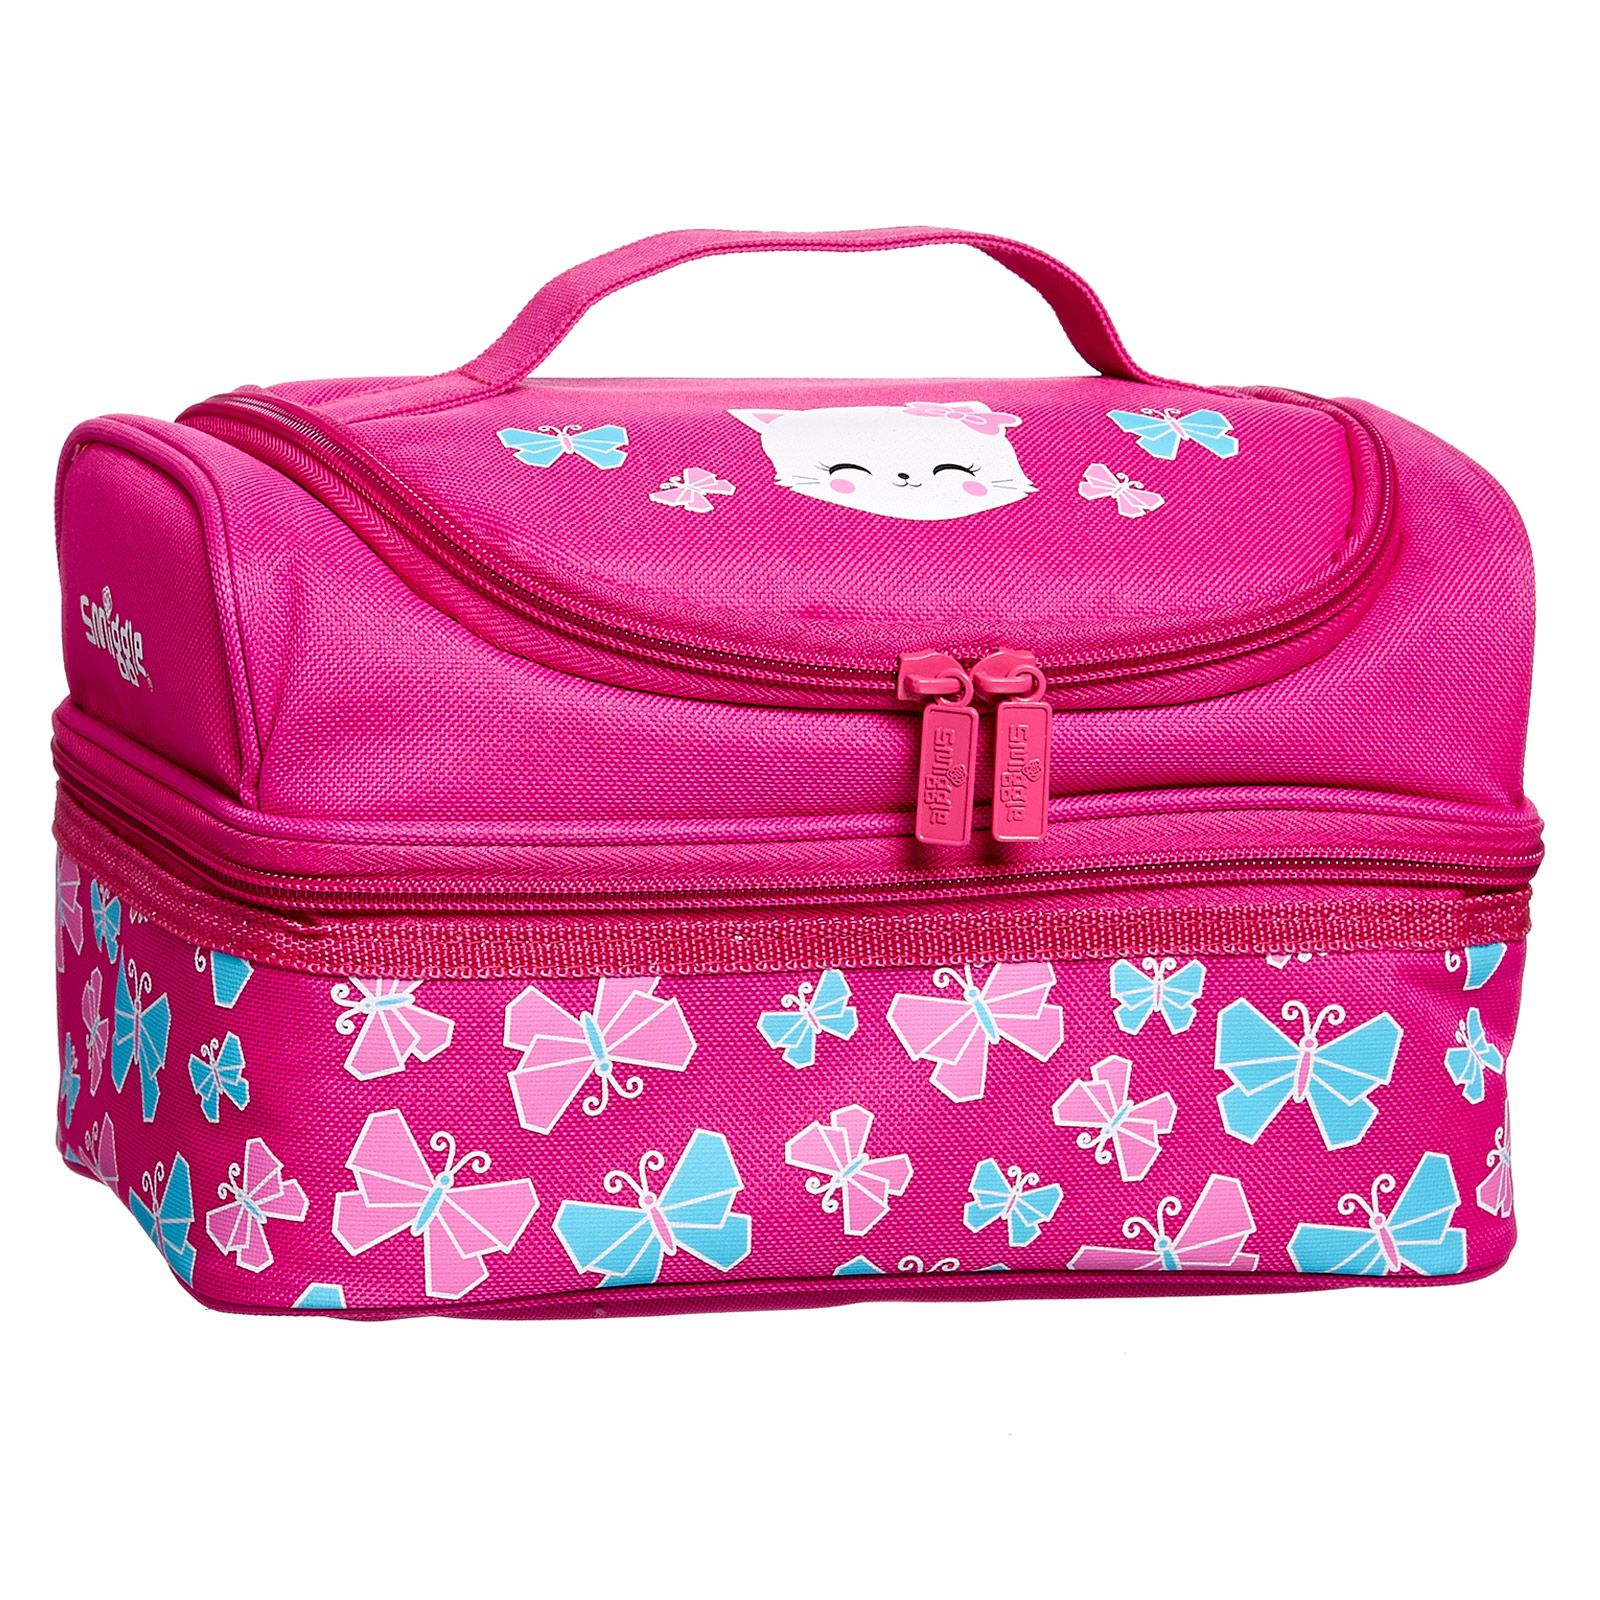 Konnichiwa Double Decker Lunchbox Smiggle 24 95 Lunch